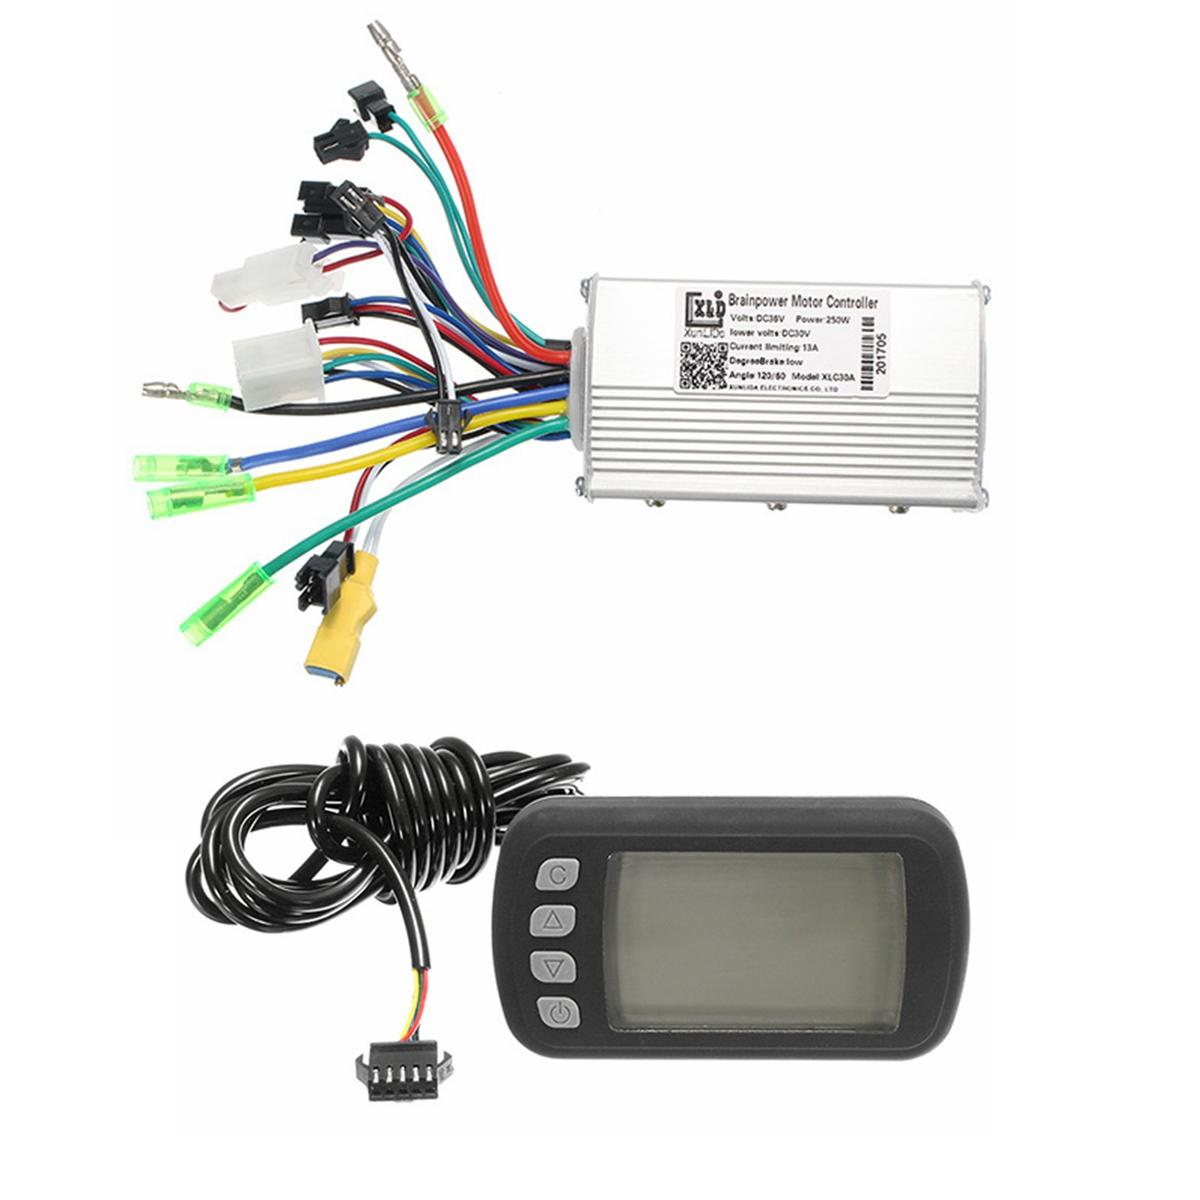 24v36v48v250w350w Bldc Motor Speed Controller Lcd Display For Mtb E How To Build Dc Bike Scooter Model A